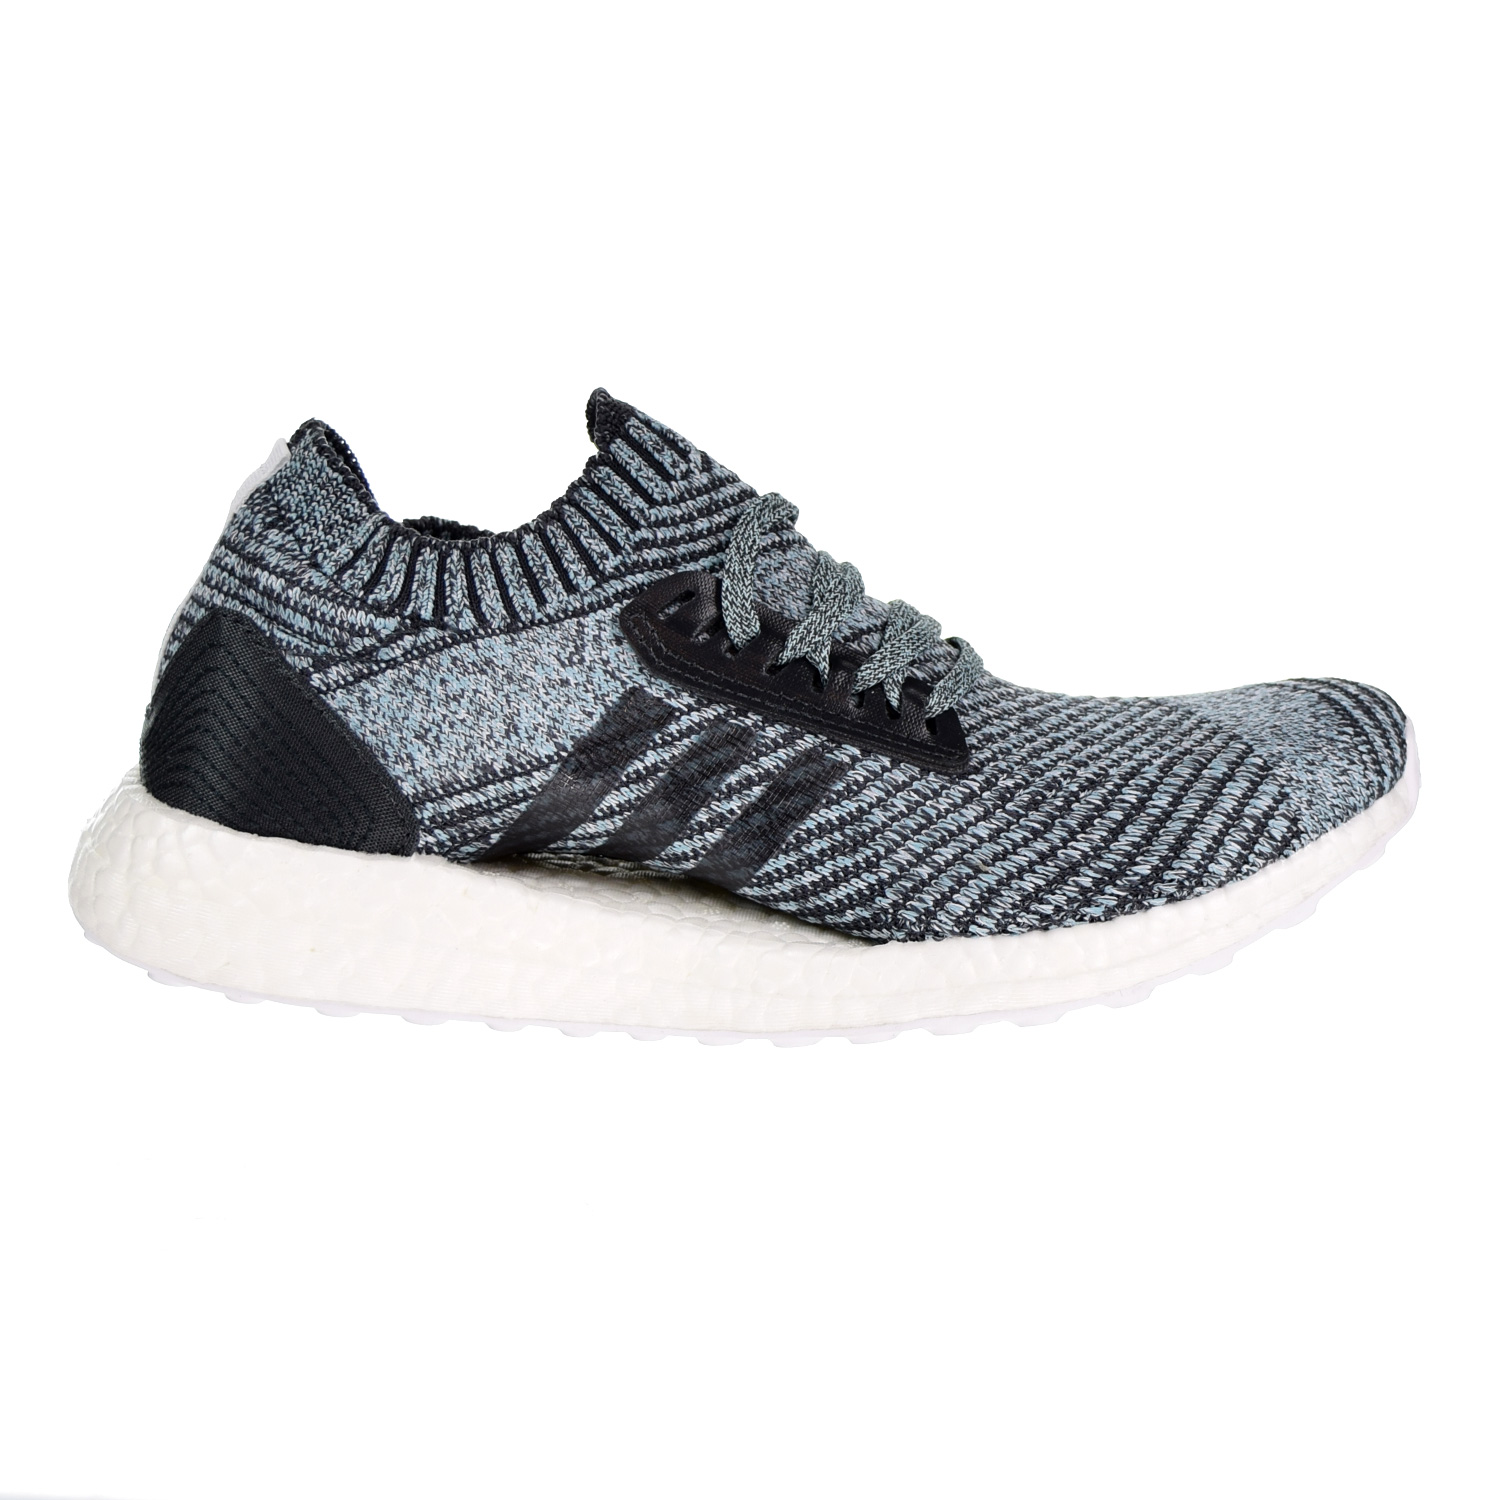 brand new d1a76 5ff6d Details about Adidas Ultraboost X Parley Womens Shoes CarbonCarbonBlue  Spirit DB0641